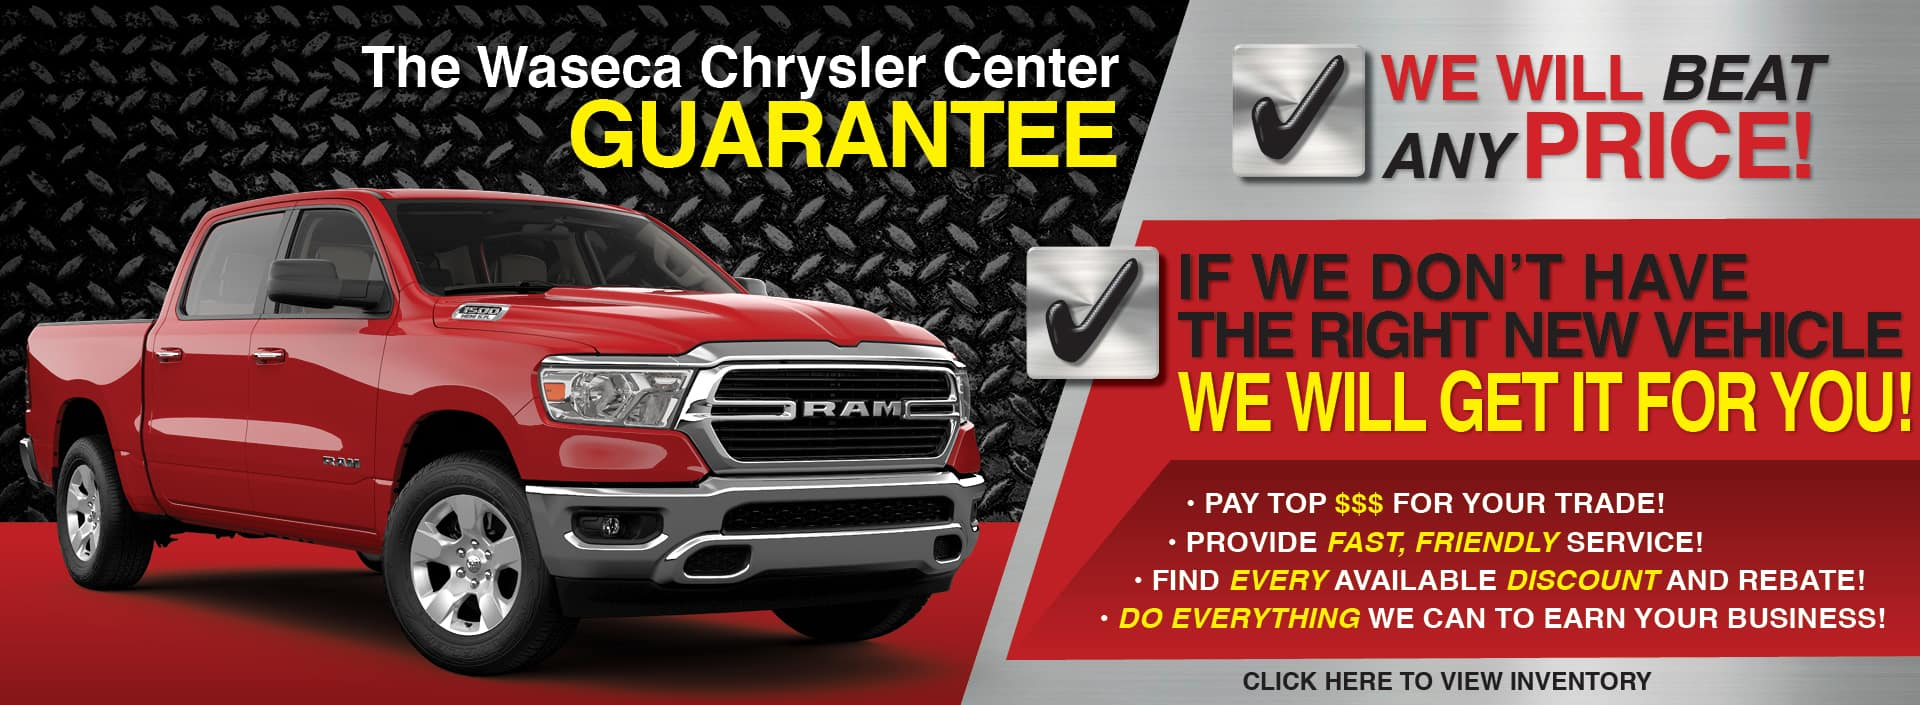 Waseca Chrysler Center Guarantee